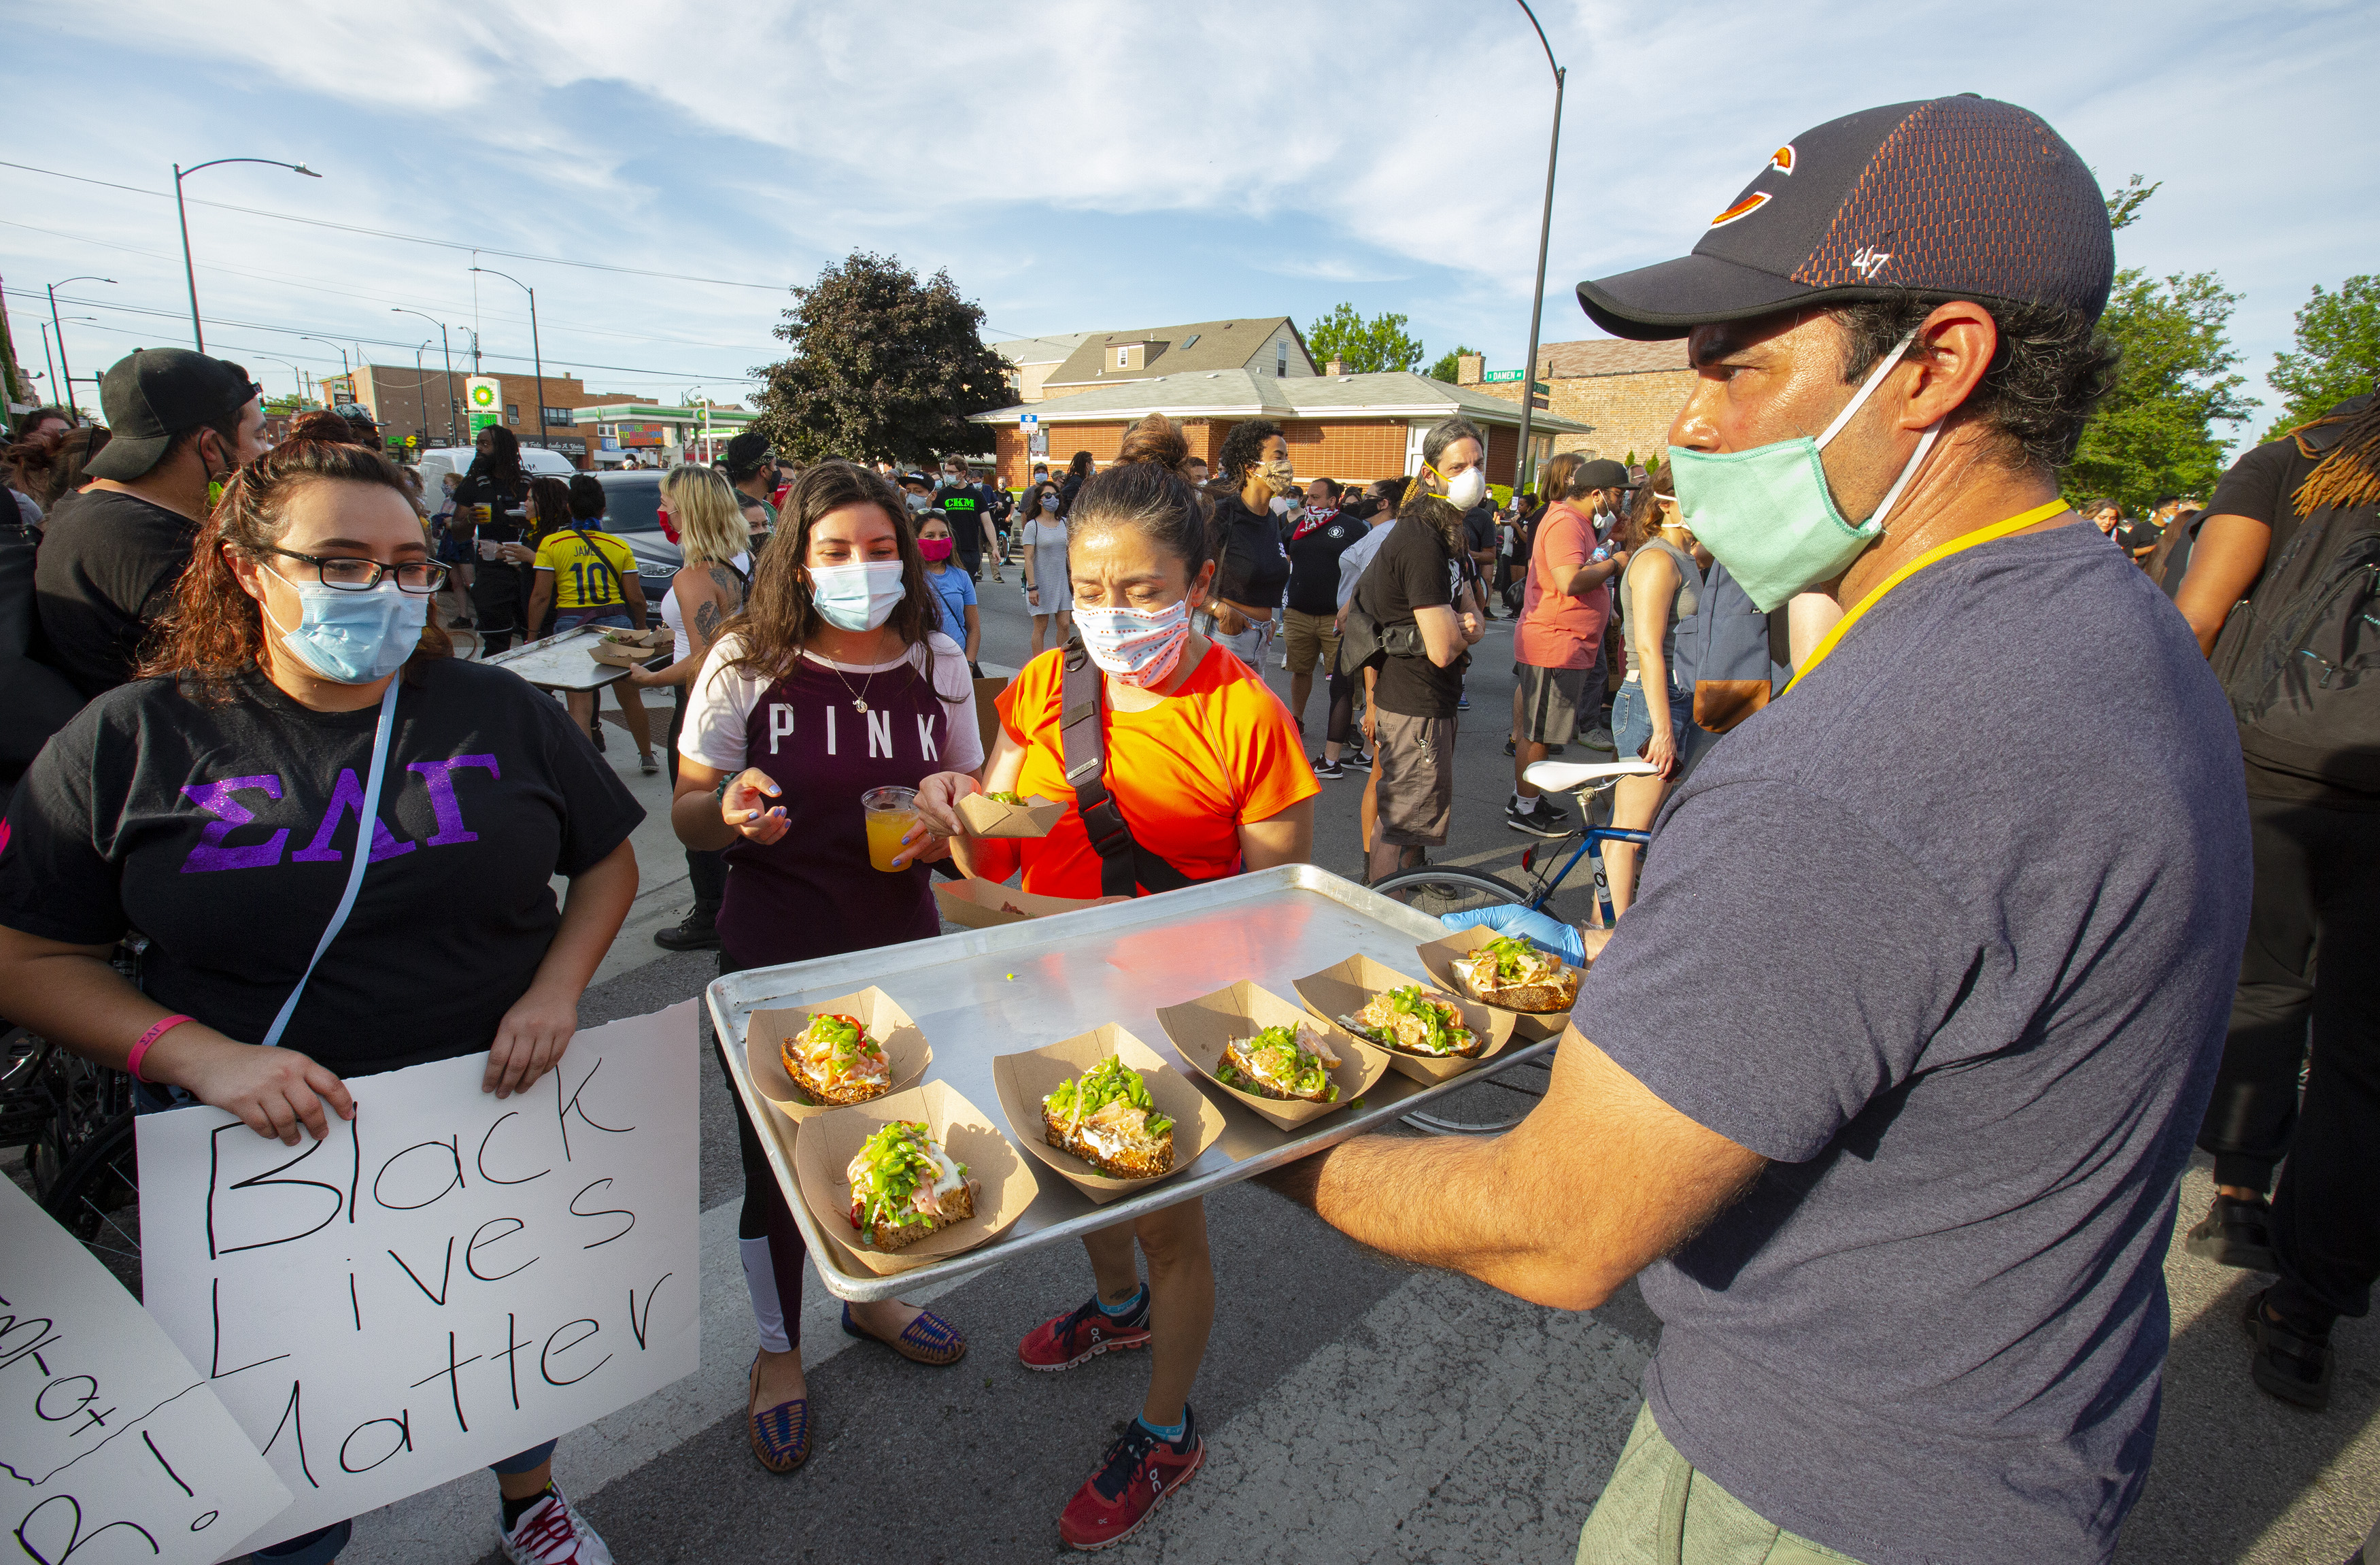 """Two women stand wearing masks looking a man in a mask. He is holding a tray of tacos. One of the women carries a sign that says """"Black Lives Matter."""""""